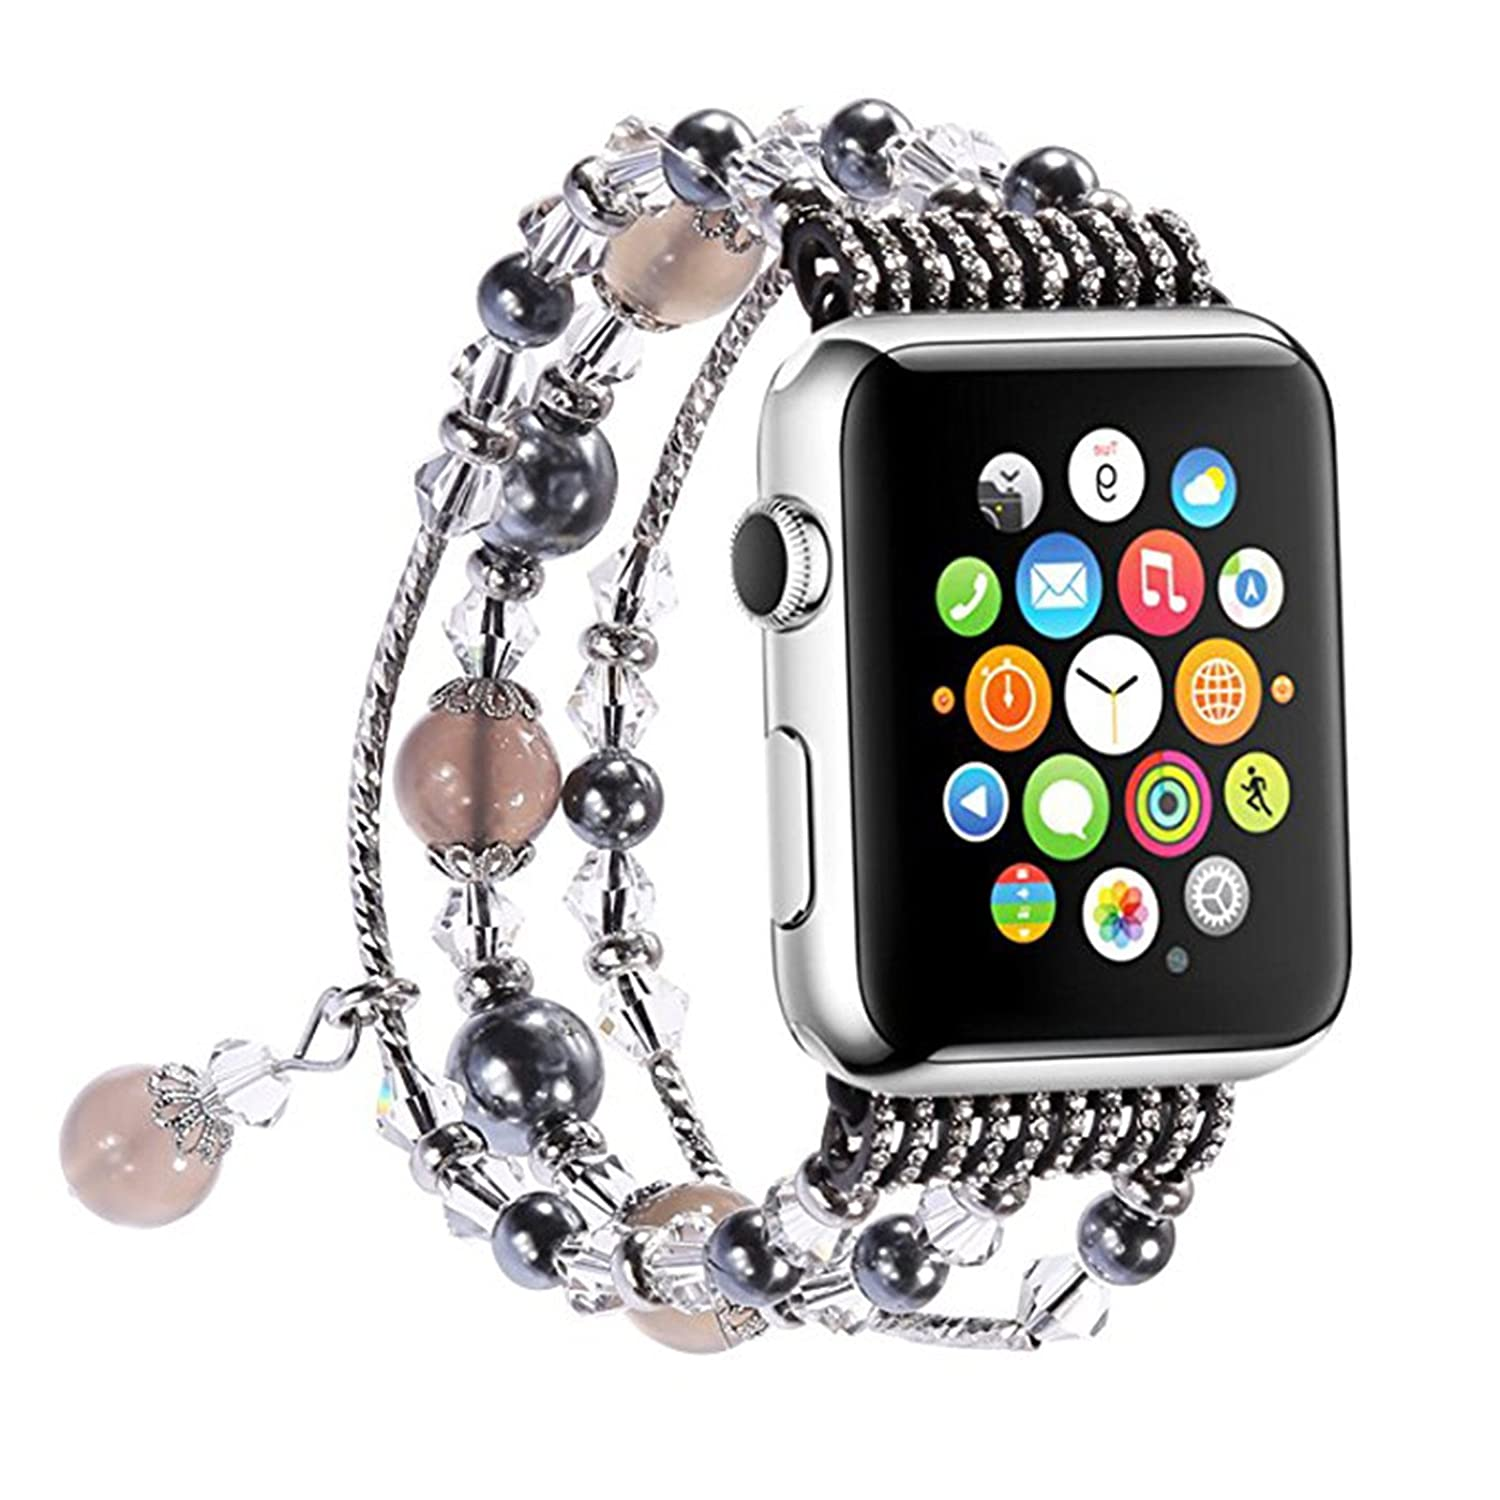 Apple Watch Band, Fashion Handmade Faux Pearl Natural Stone Bracelet Replacement iWatch Strap Women Girls for Apple Watch Series 2 Series 1 All Version by Antais